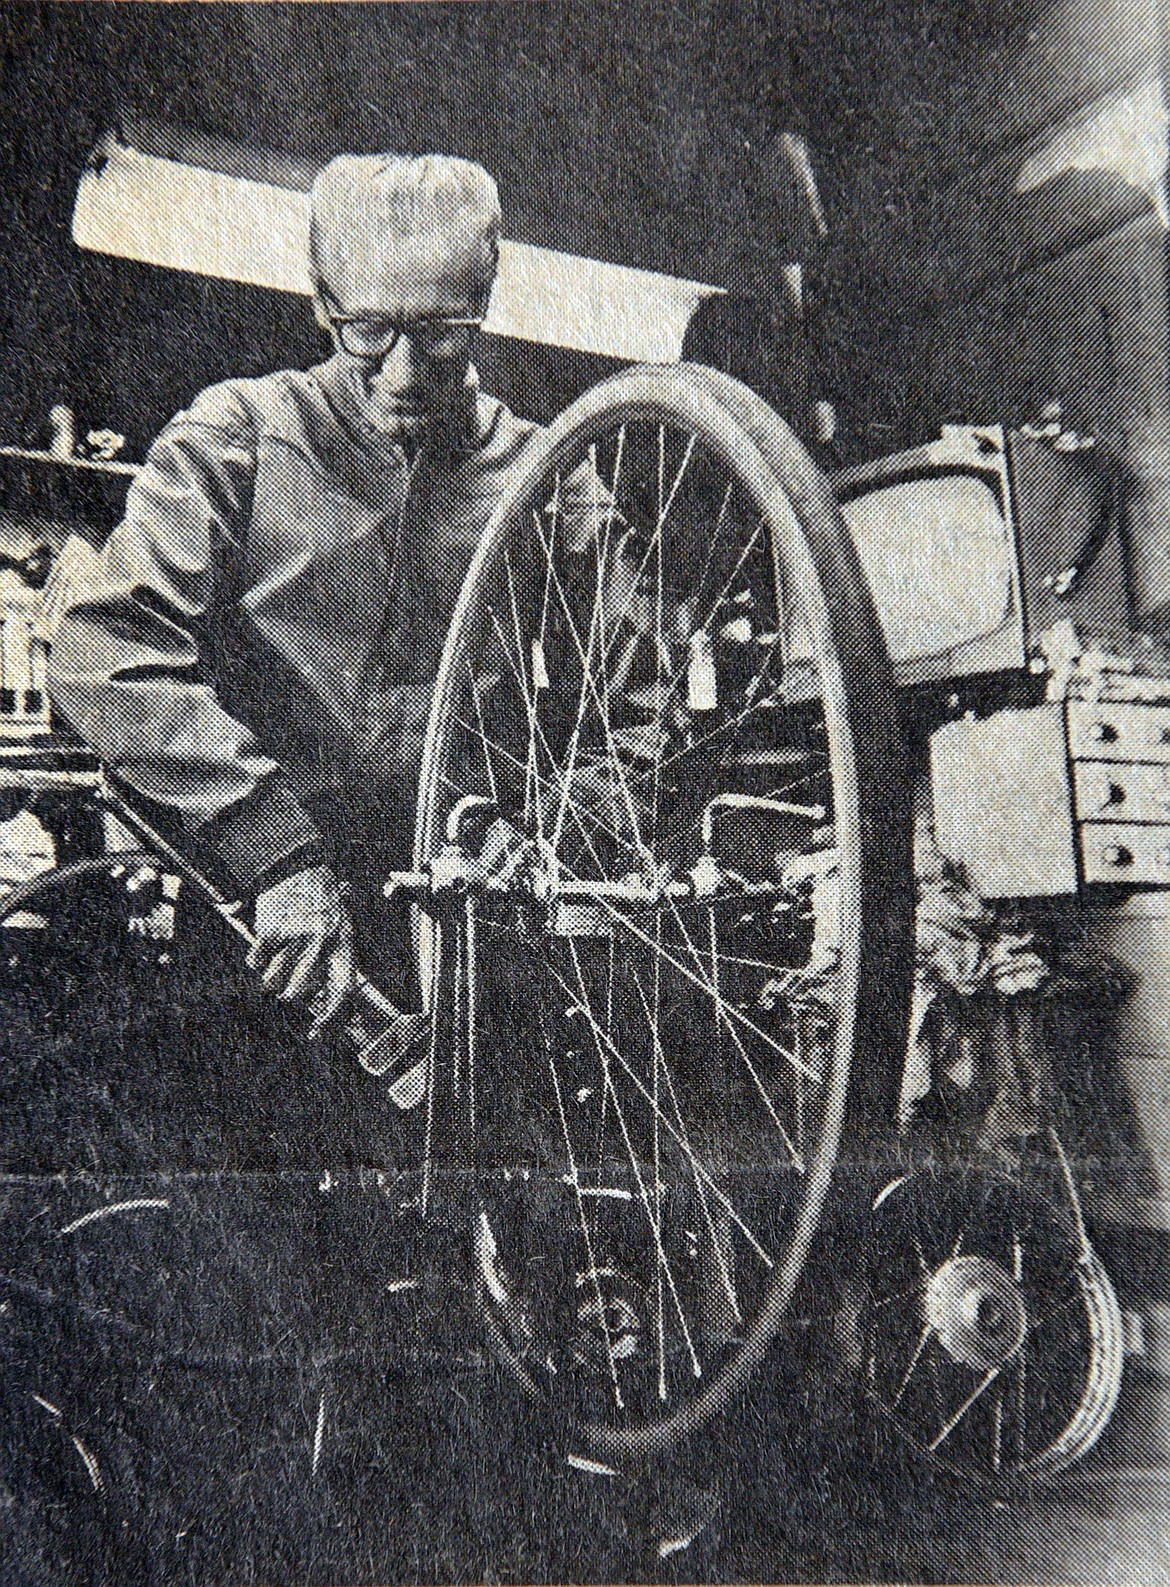 Bernard Wheaton won national awards for his knowledge and performance in the peddling business. (Photo provided)